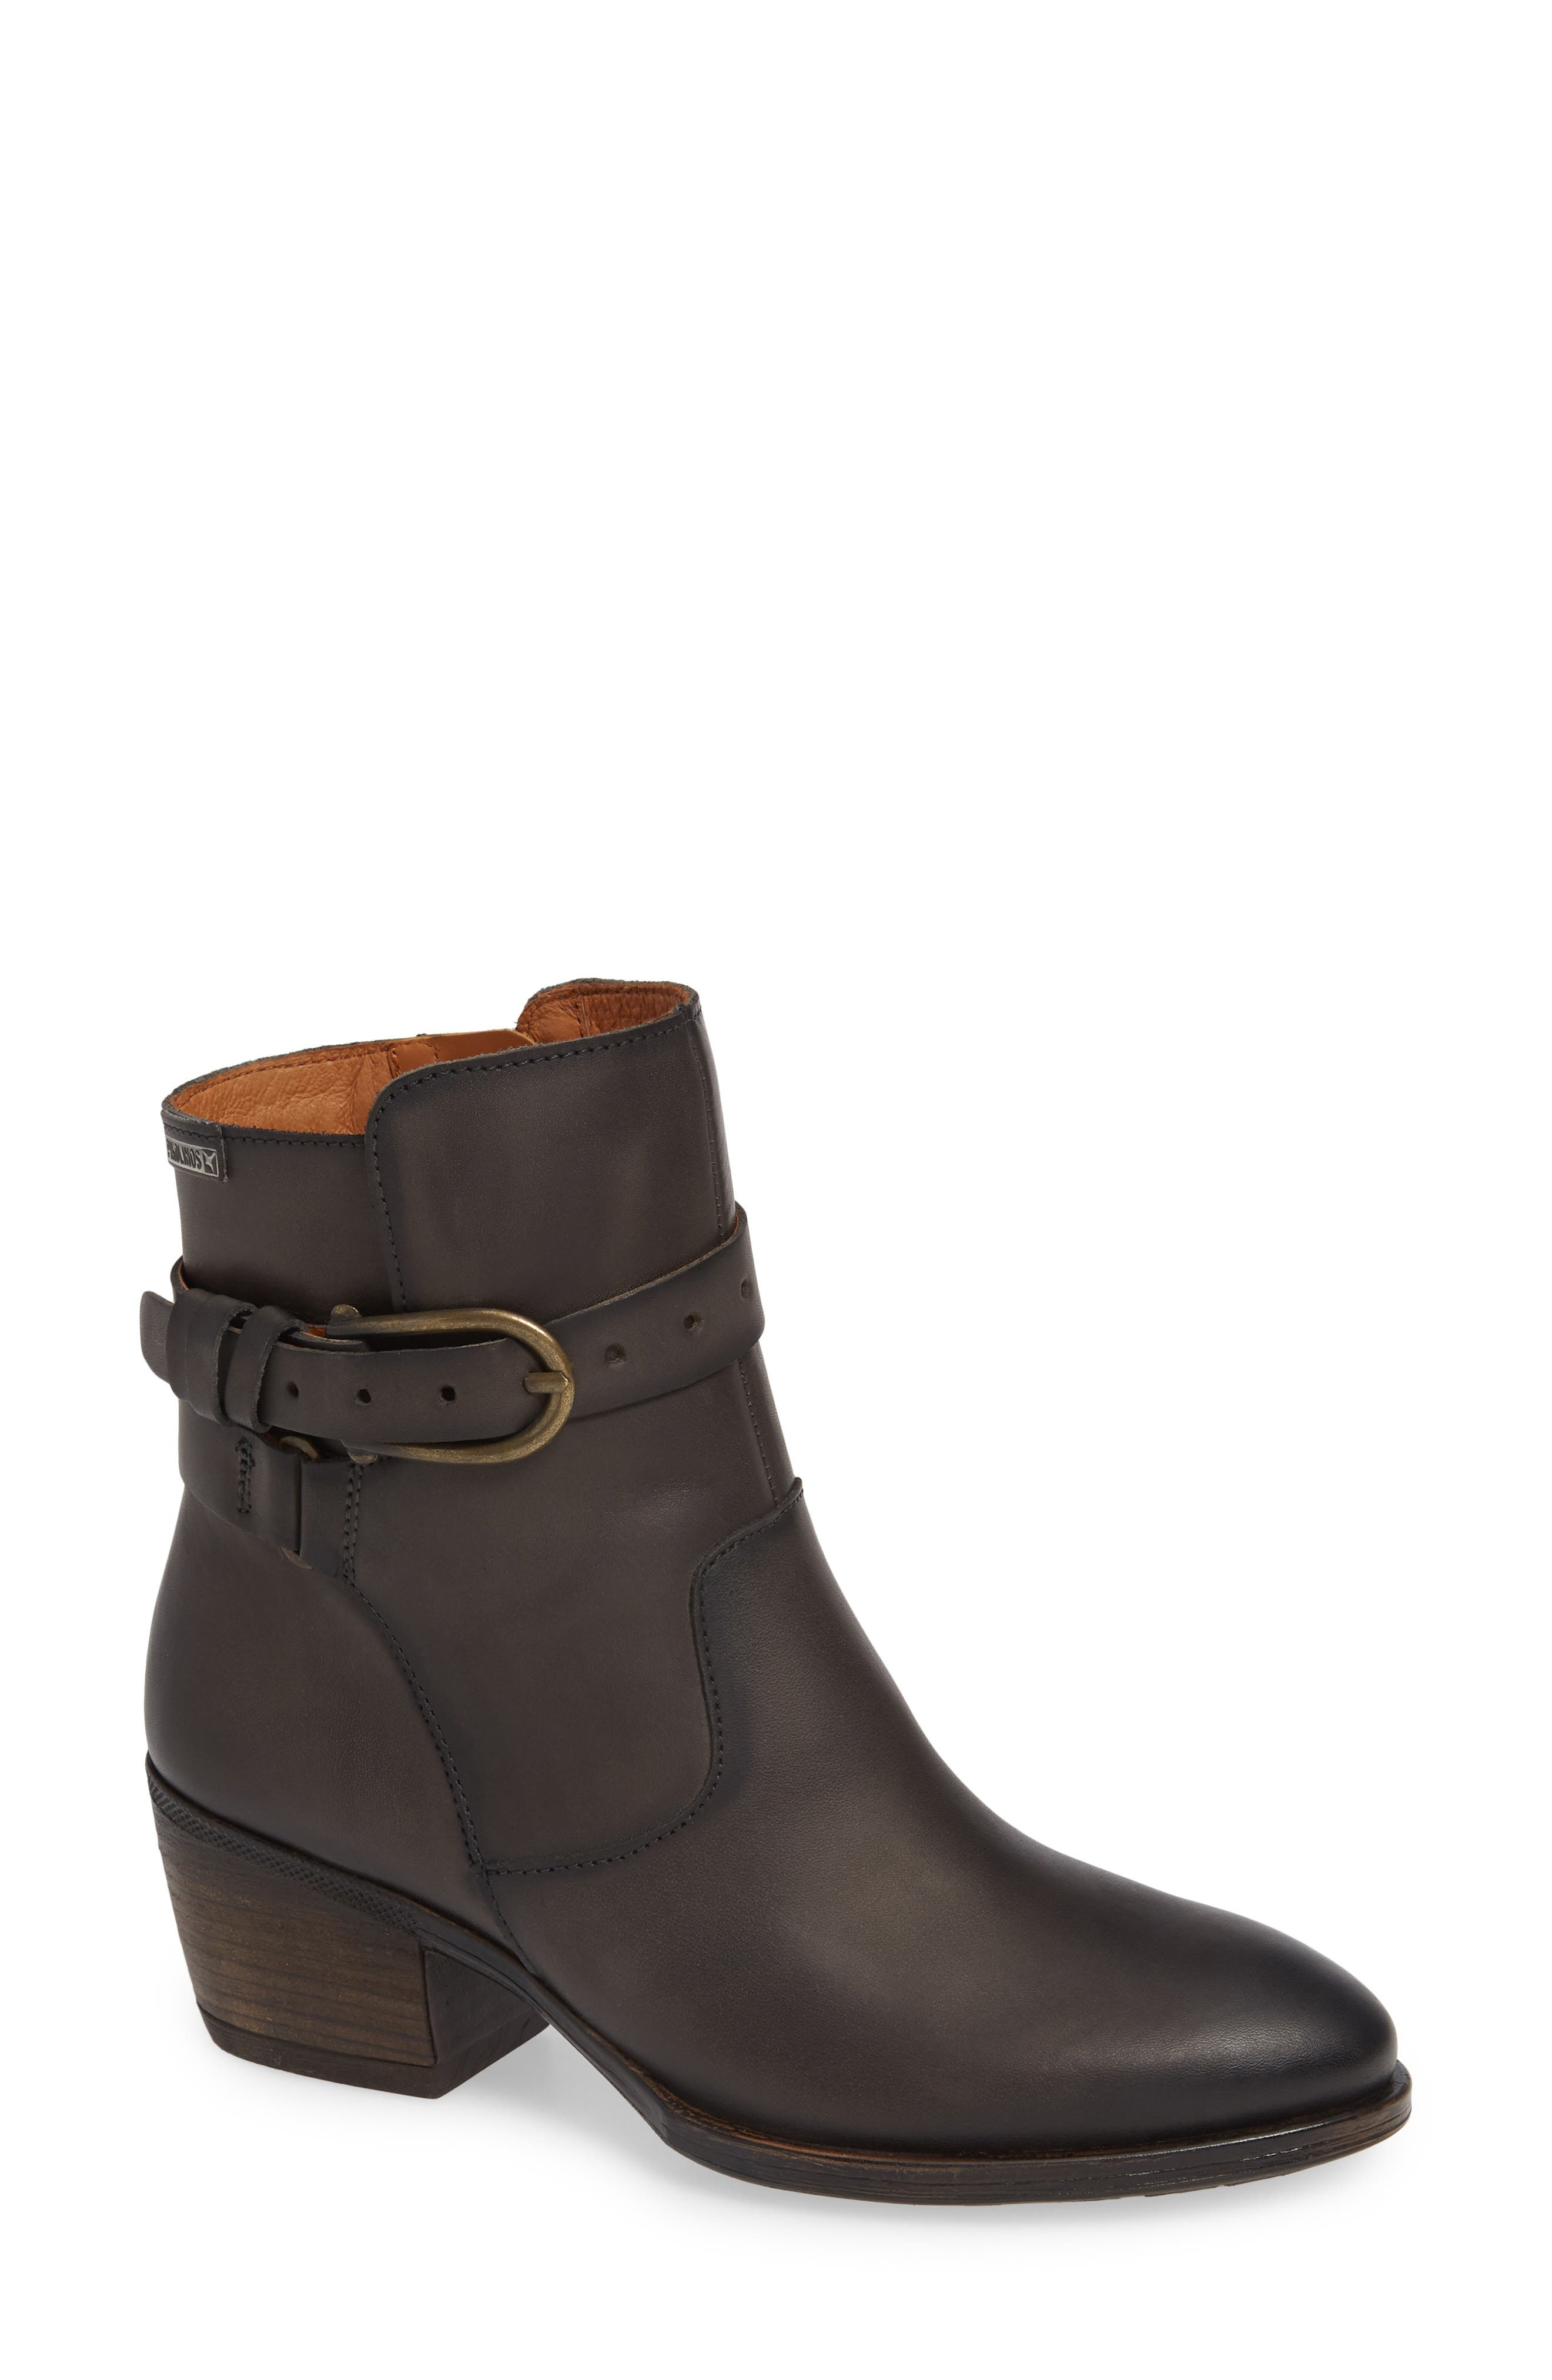 Baqueira Bootie,                         Main,                         color, LEAD LEATHER